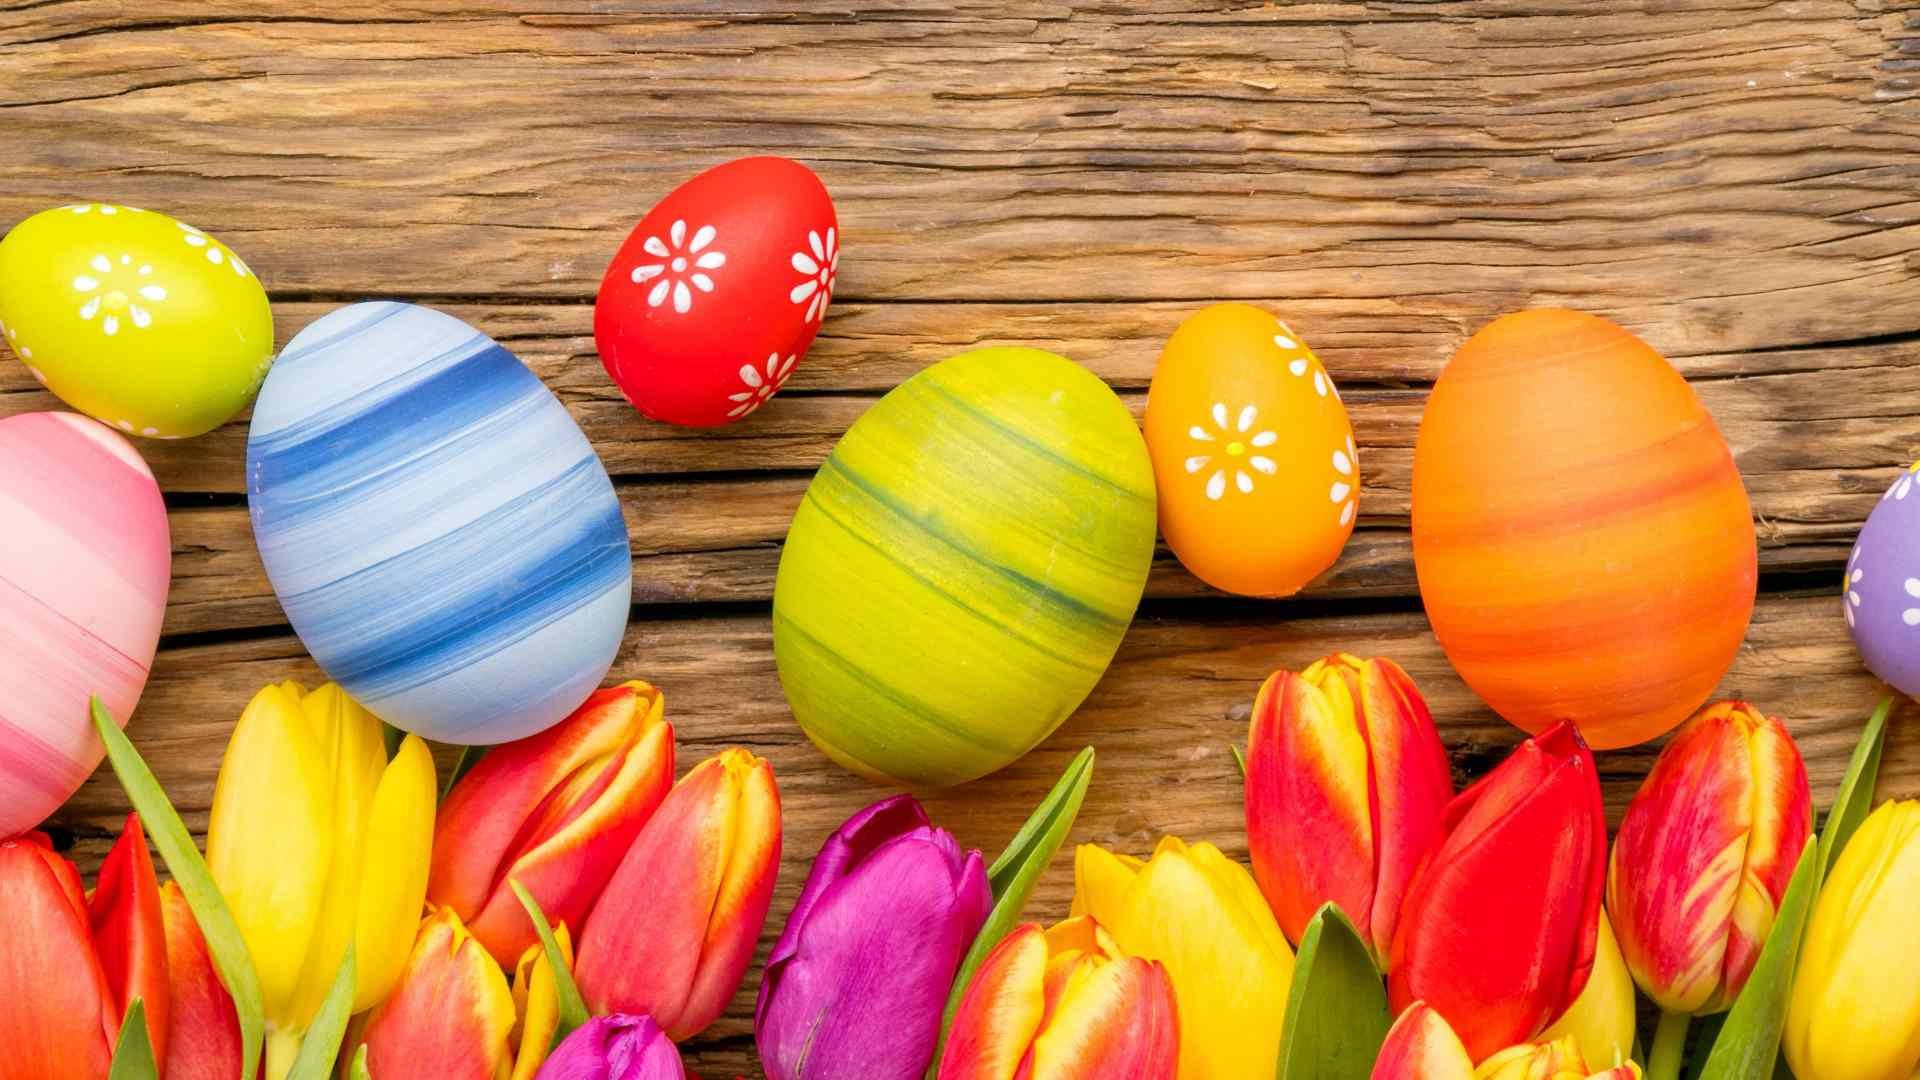 11 Beautiful and Easter Desktop Wallpapers 1920x1080